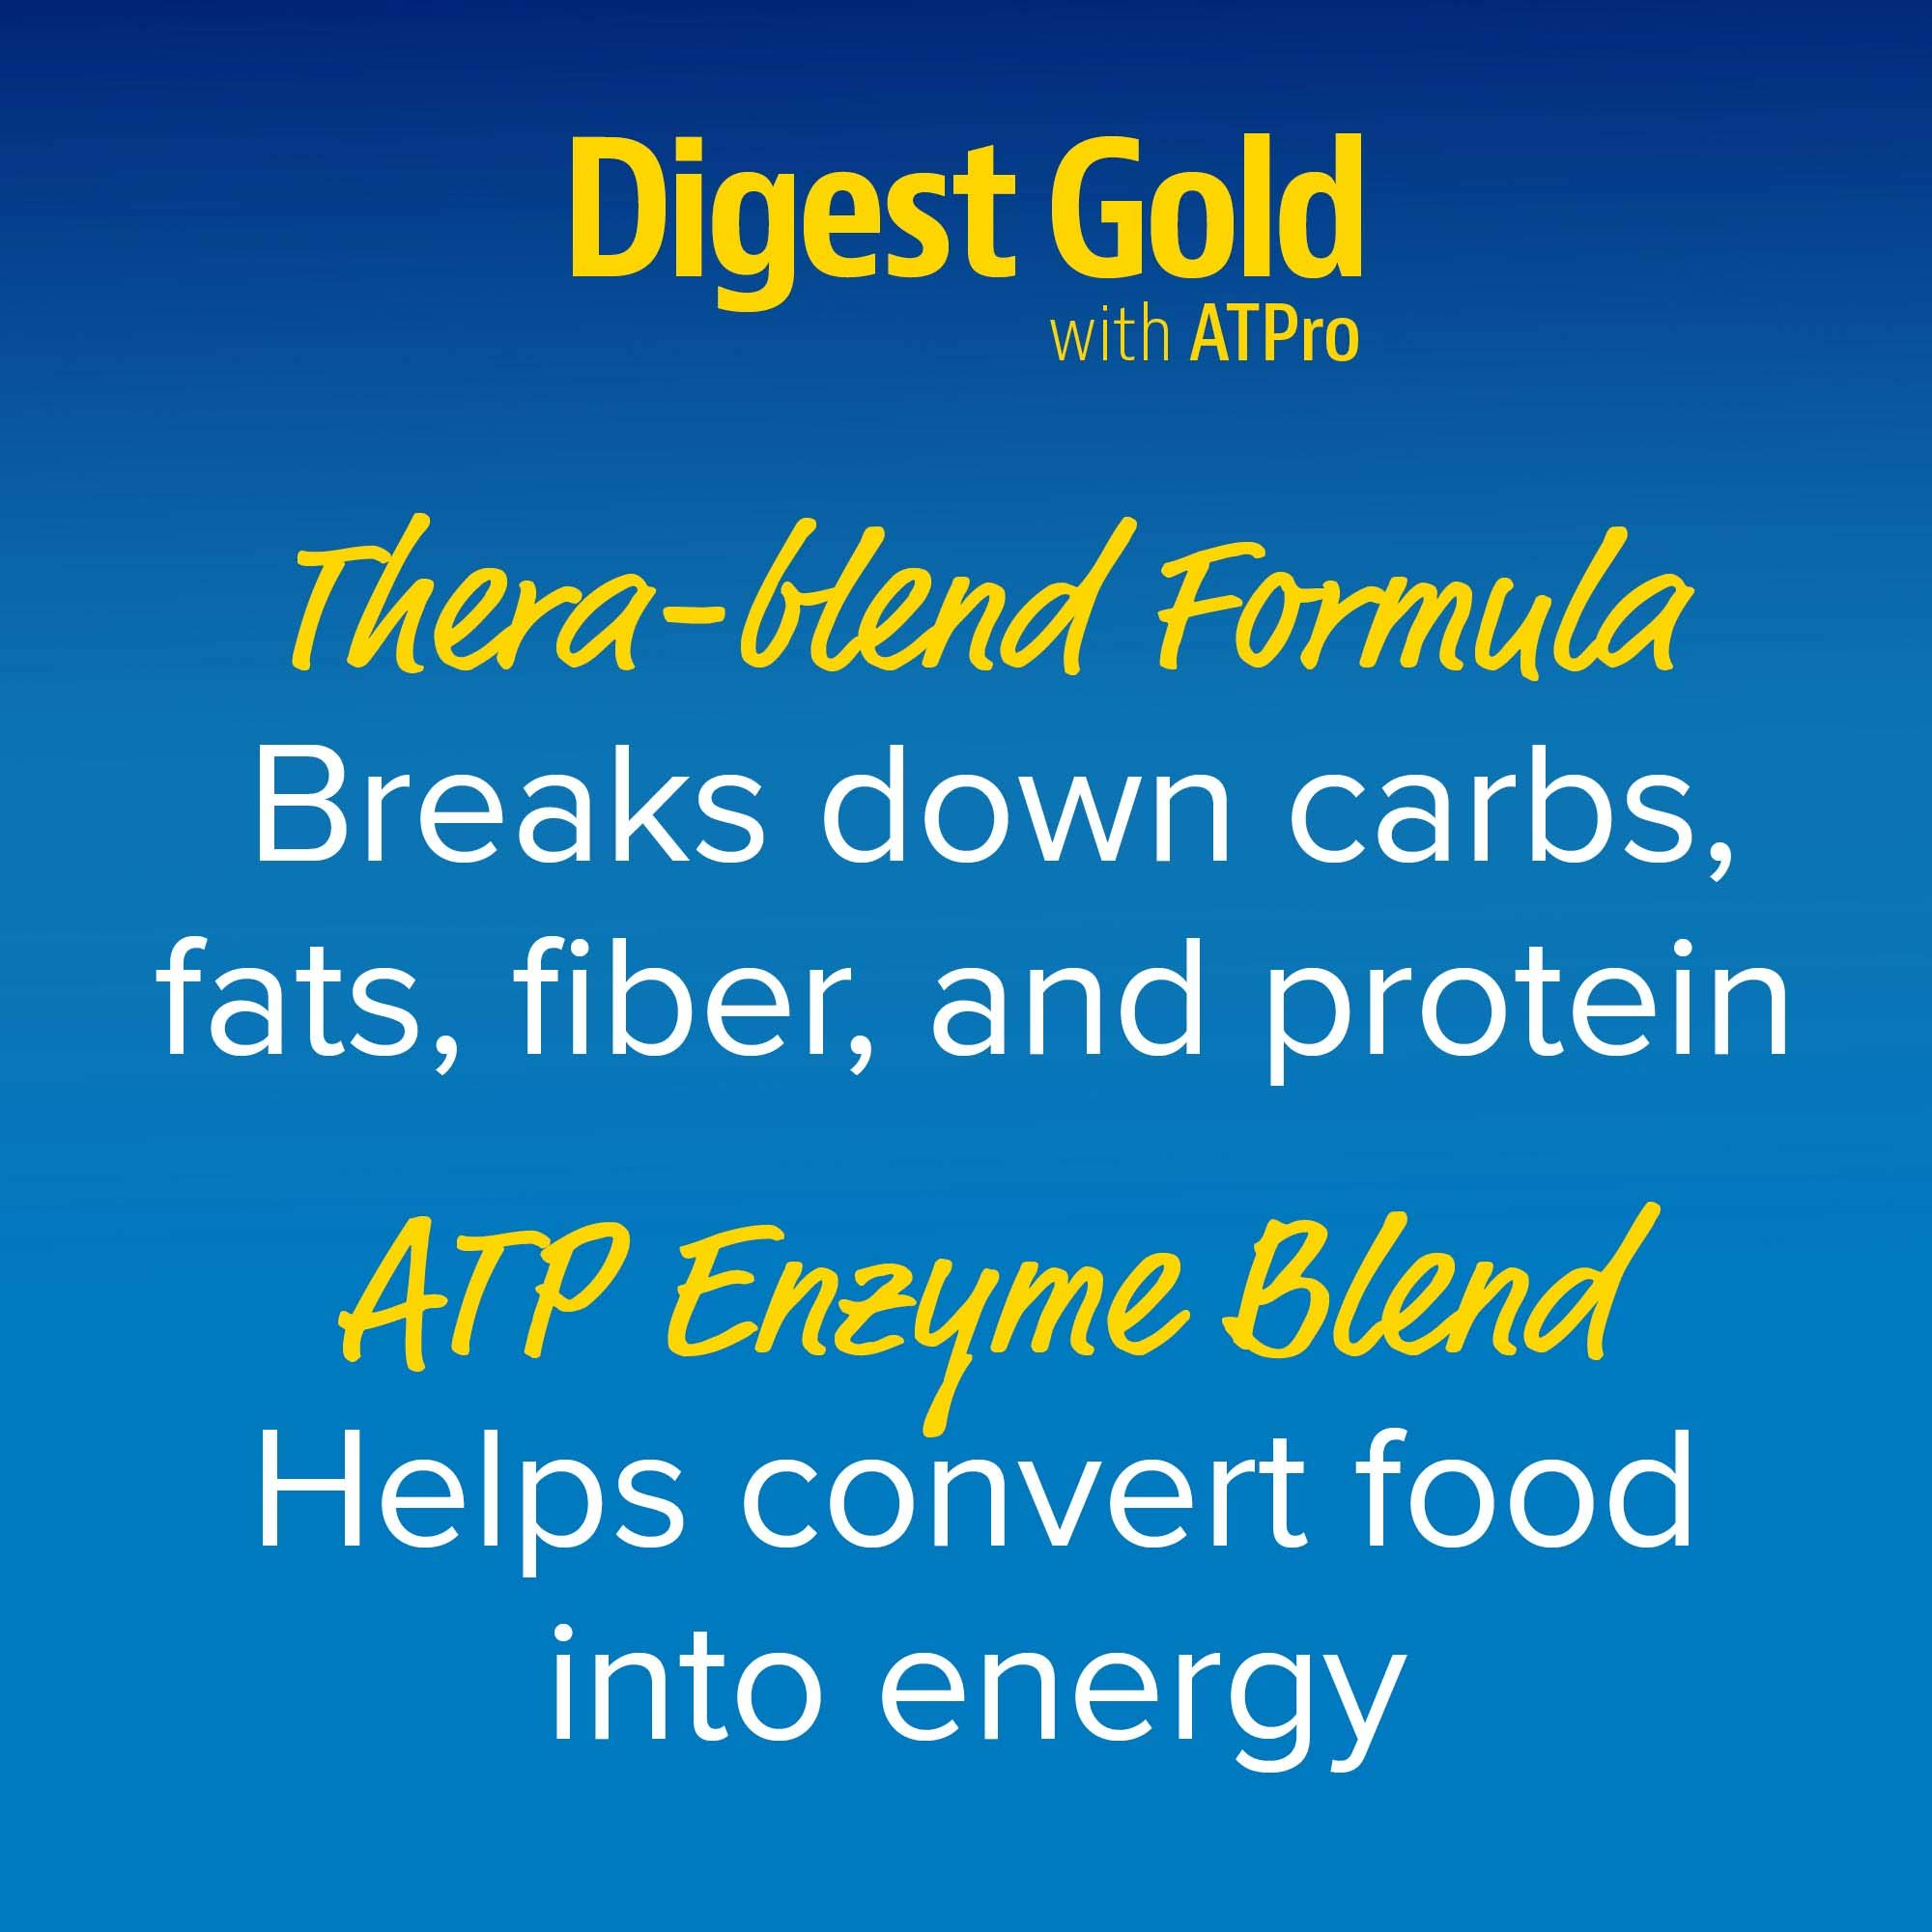 Enzymedica - Digest Gold with ATPro, Daily Digestive Support Supplement with Enzymes and ATP, 240 Capsules (FFP) by Enzymedica (Image #5)